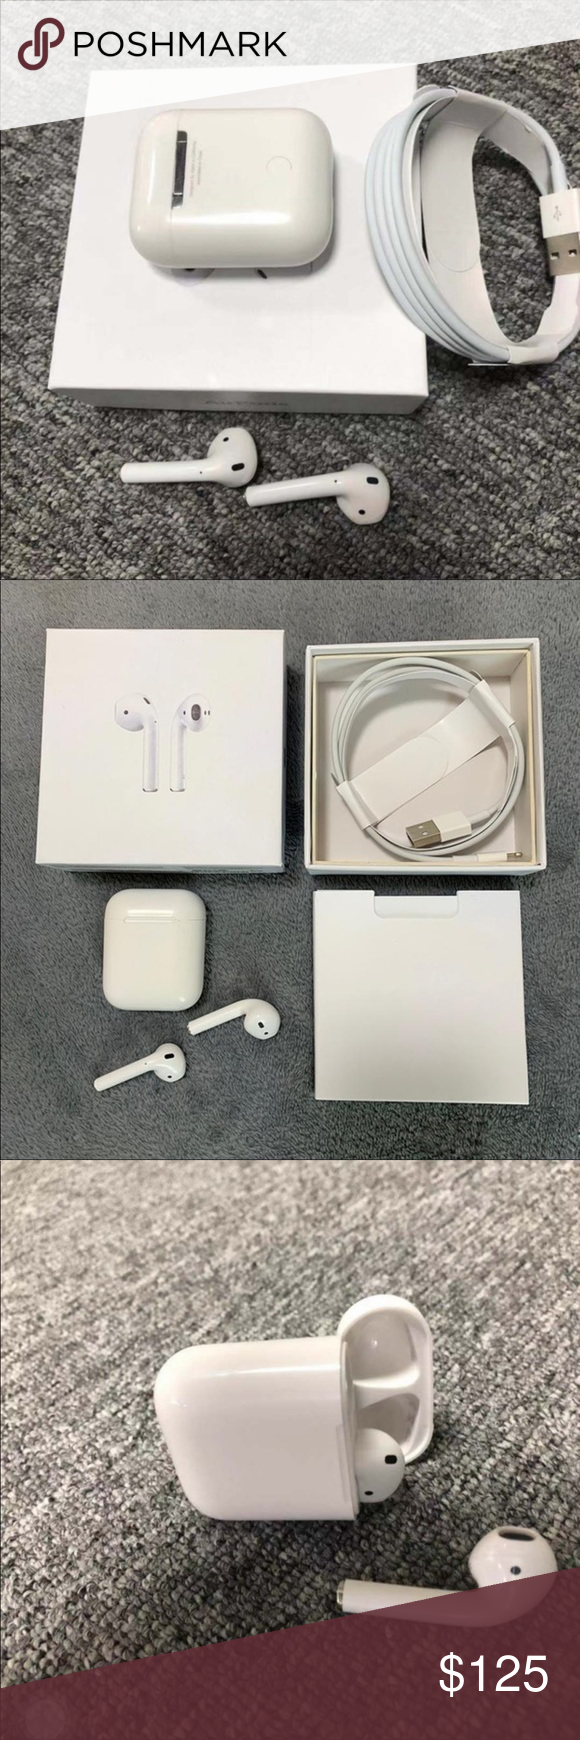 Apple Airpods 2nd Generation Brand New Wireless Charging Case Apple Other Apple Airpods 2 Things To Sell Generation